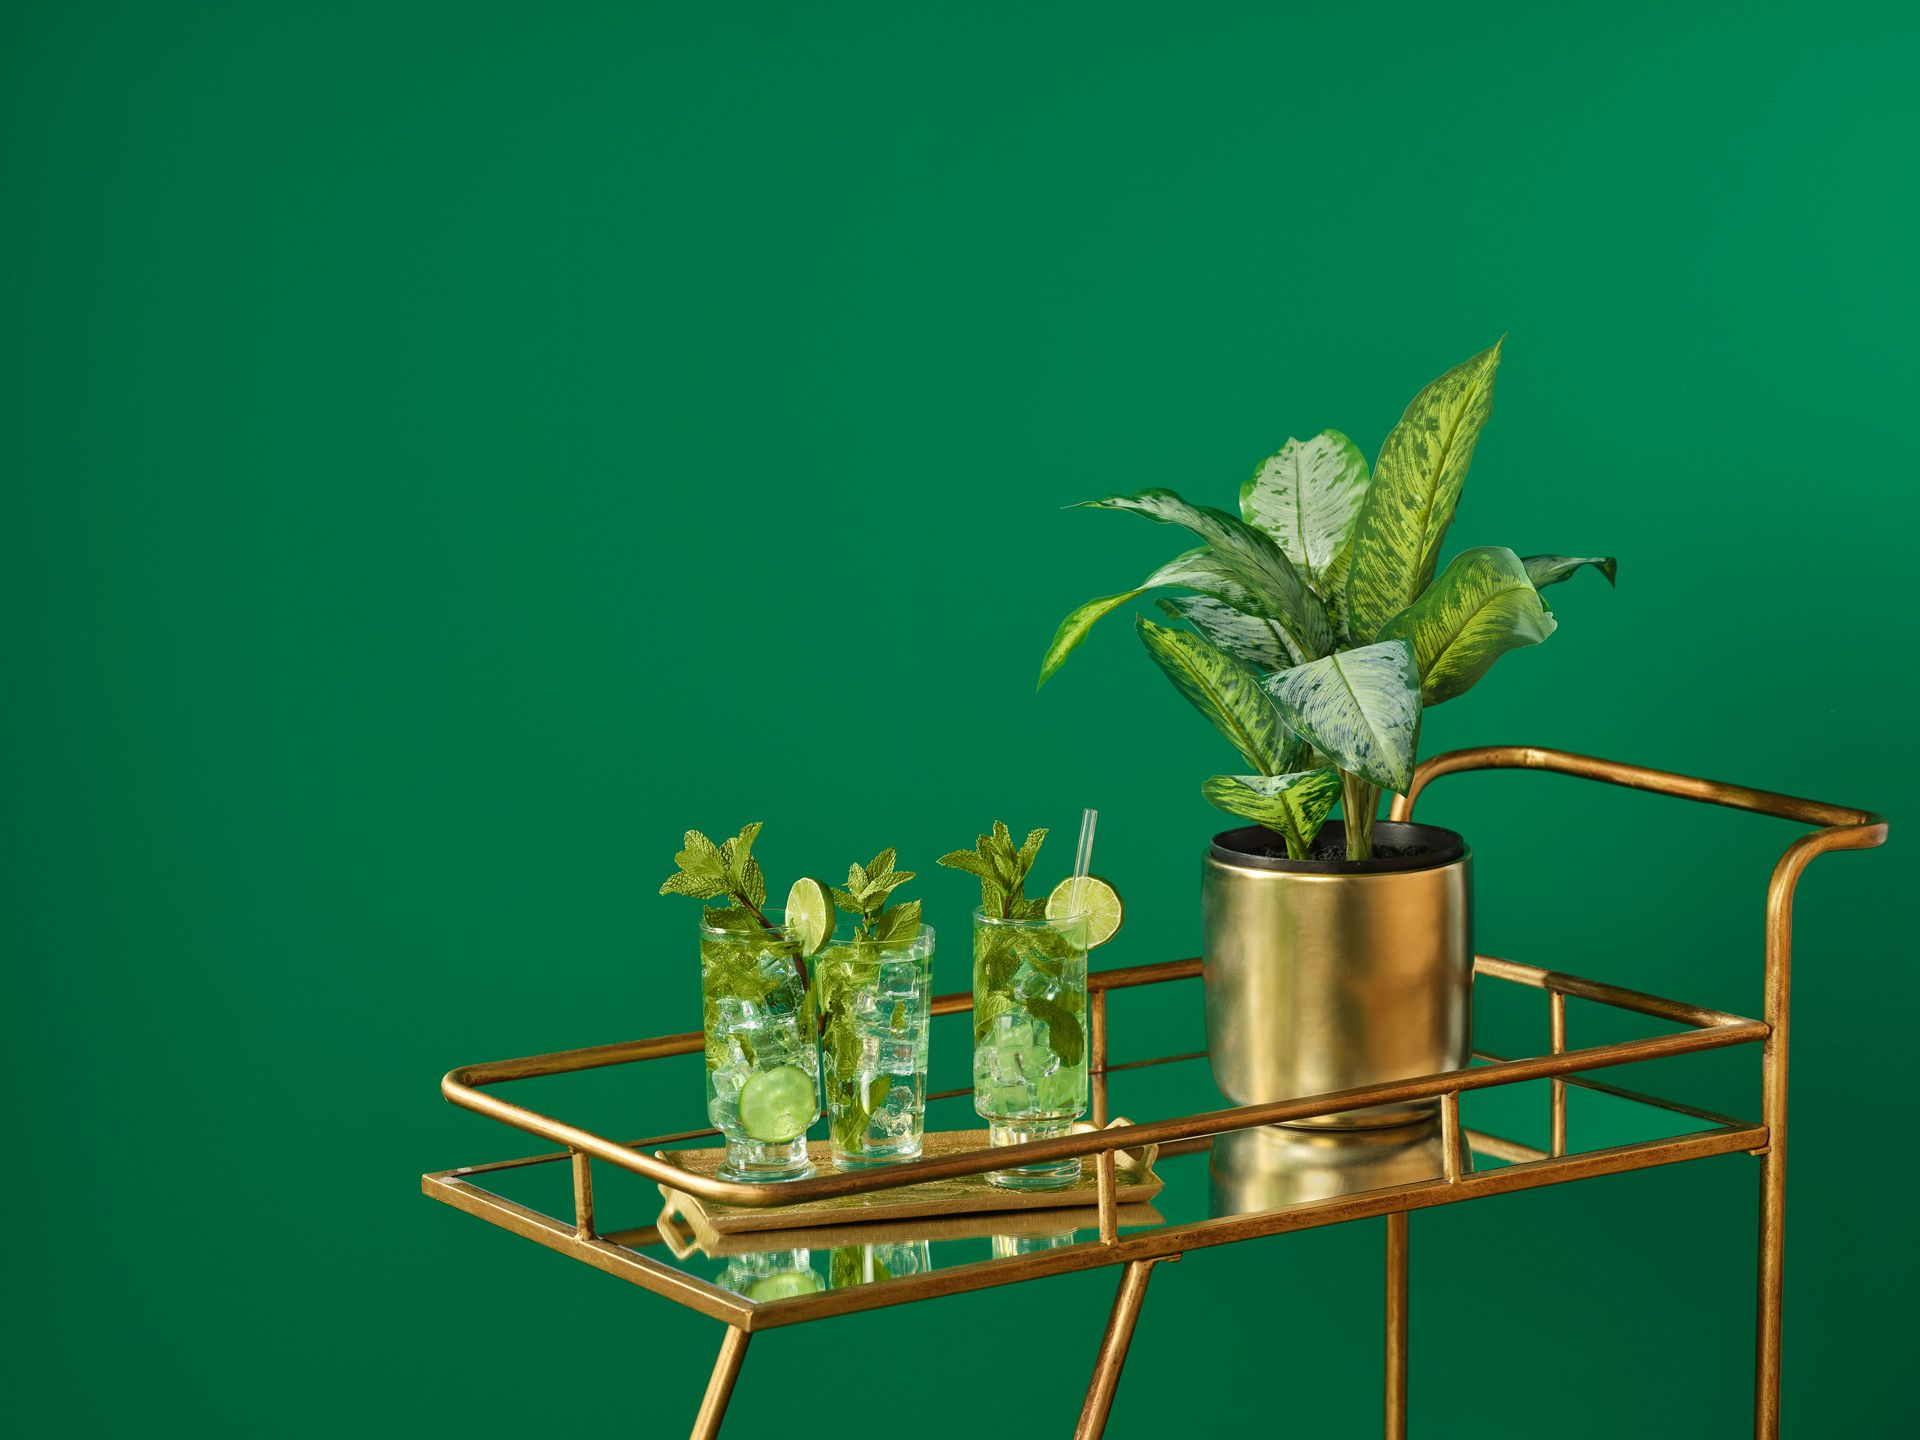 A golden bar cart holds a plant in a golden pot and three mojito drinks in front of a green painted wall.